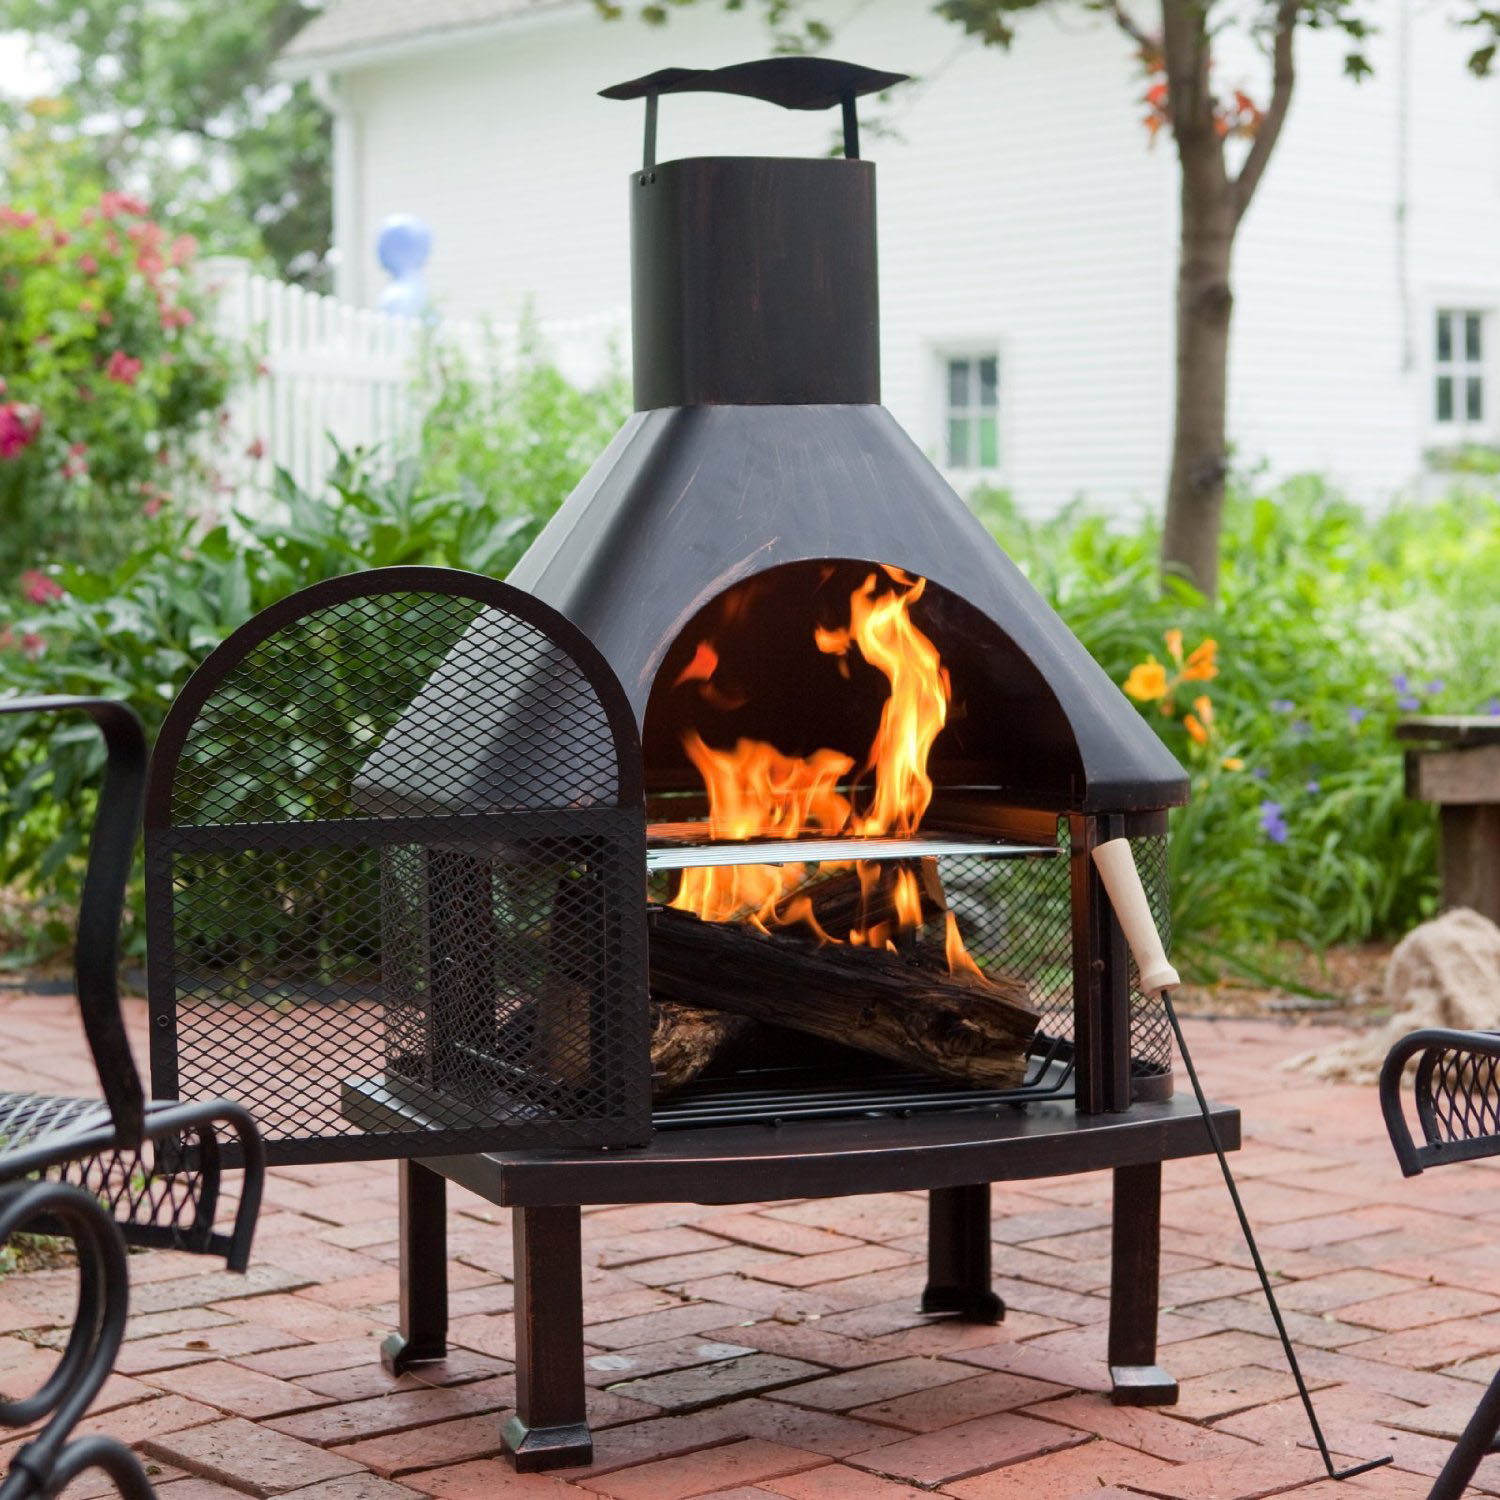 Astonishing Metal Chiminea Fire Pit